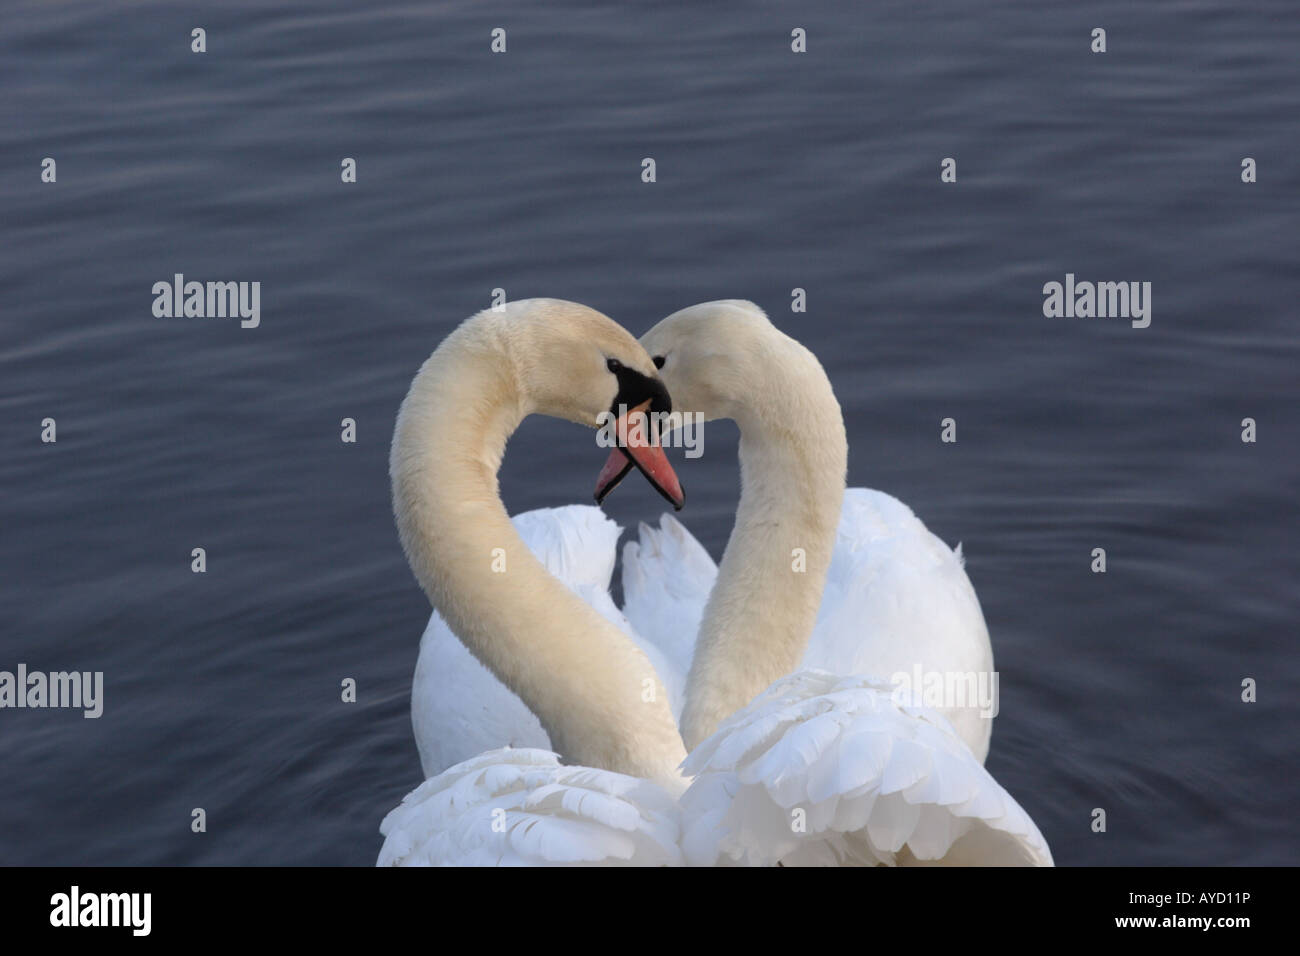 Swans necks forming a heart shape at Gartmorn Dam Country Park and Nature Reserve. Stock Photo